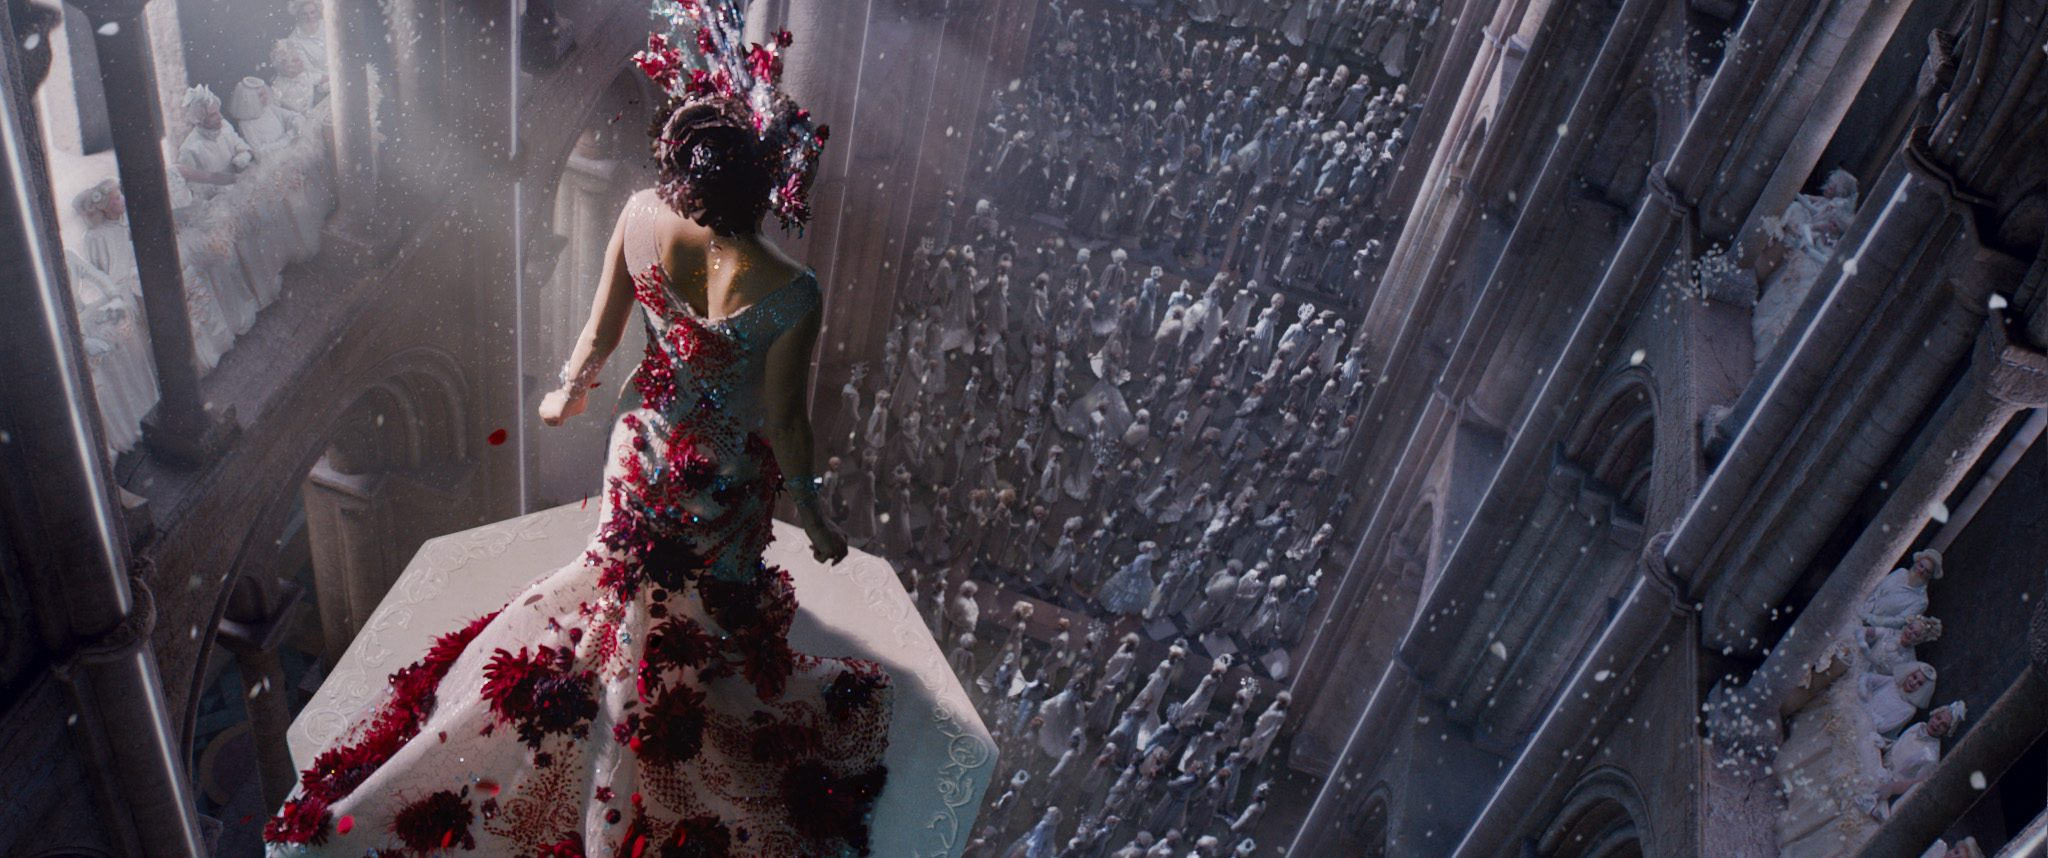 Let's Talk About…'Jupiter Ascending'